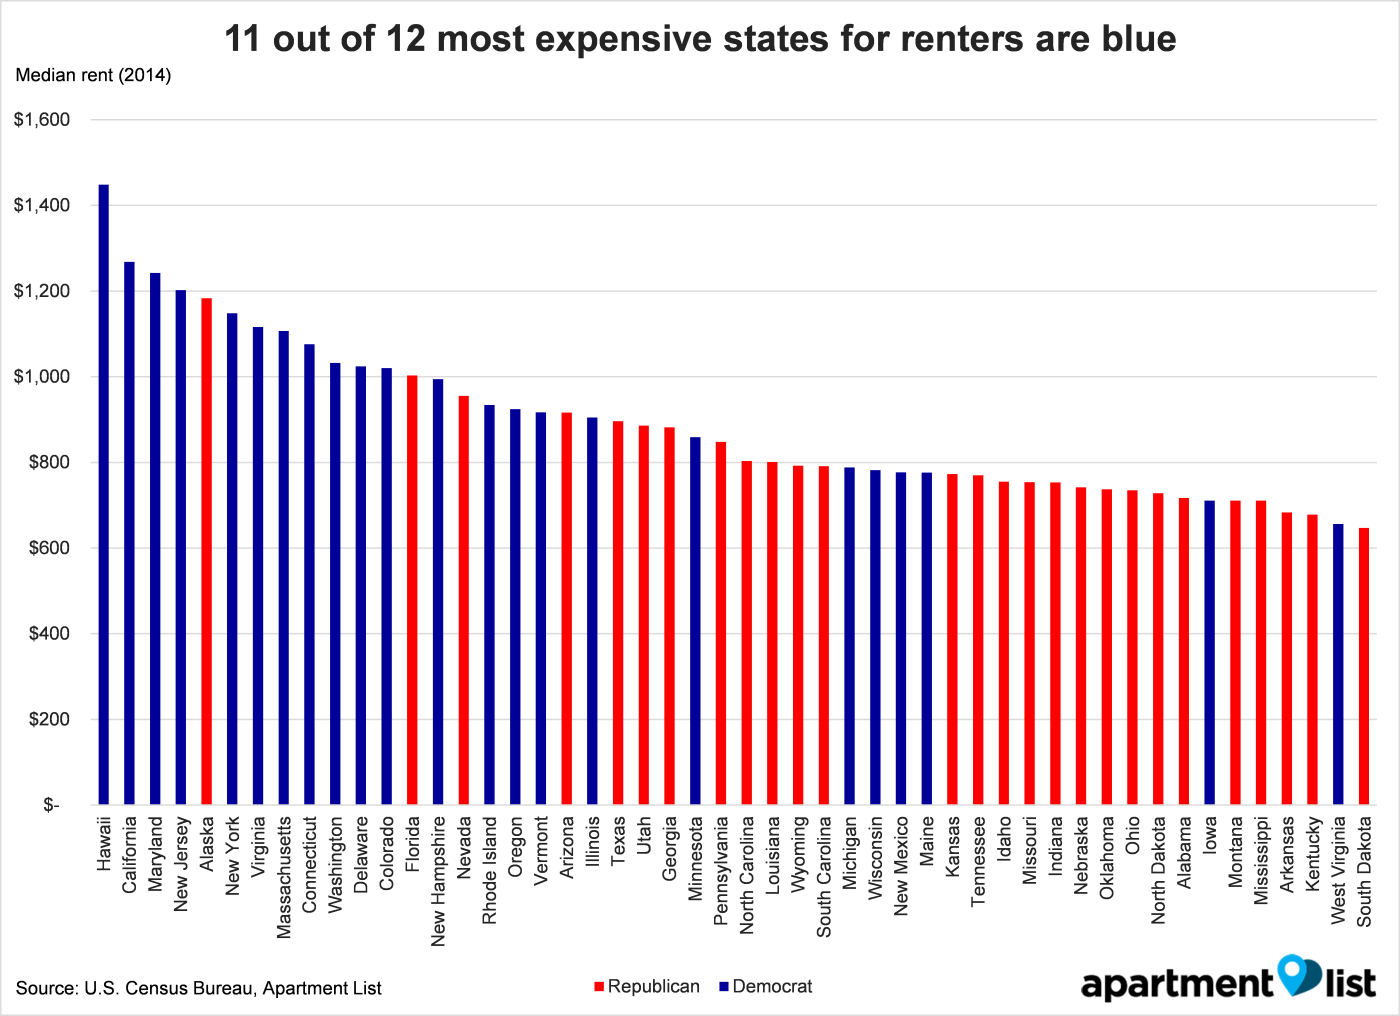 First Off Democrat Leaning States Are Much More Expensive With The Exception Of Alaska The Twelve Most Expensive States In The Us Are All Blue